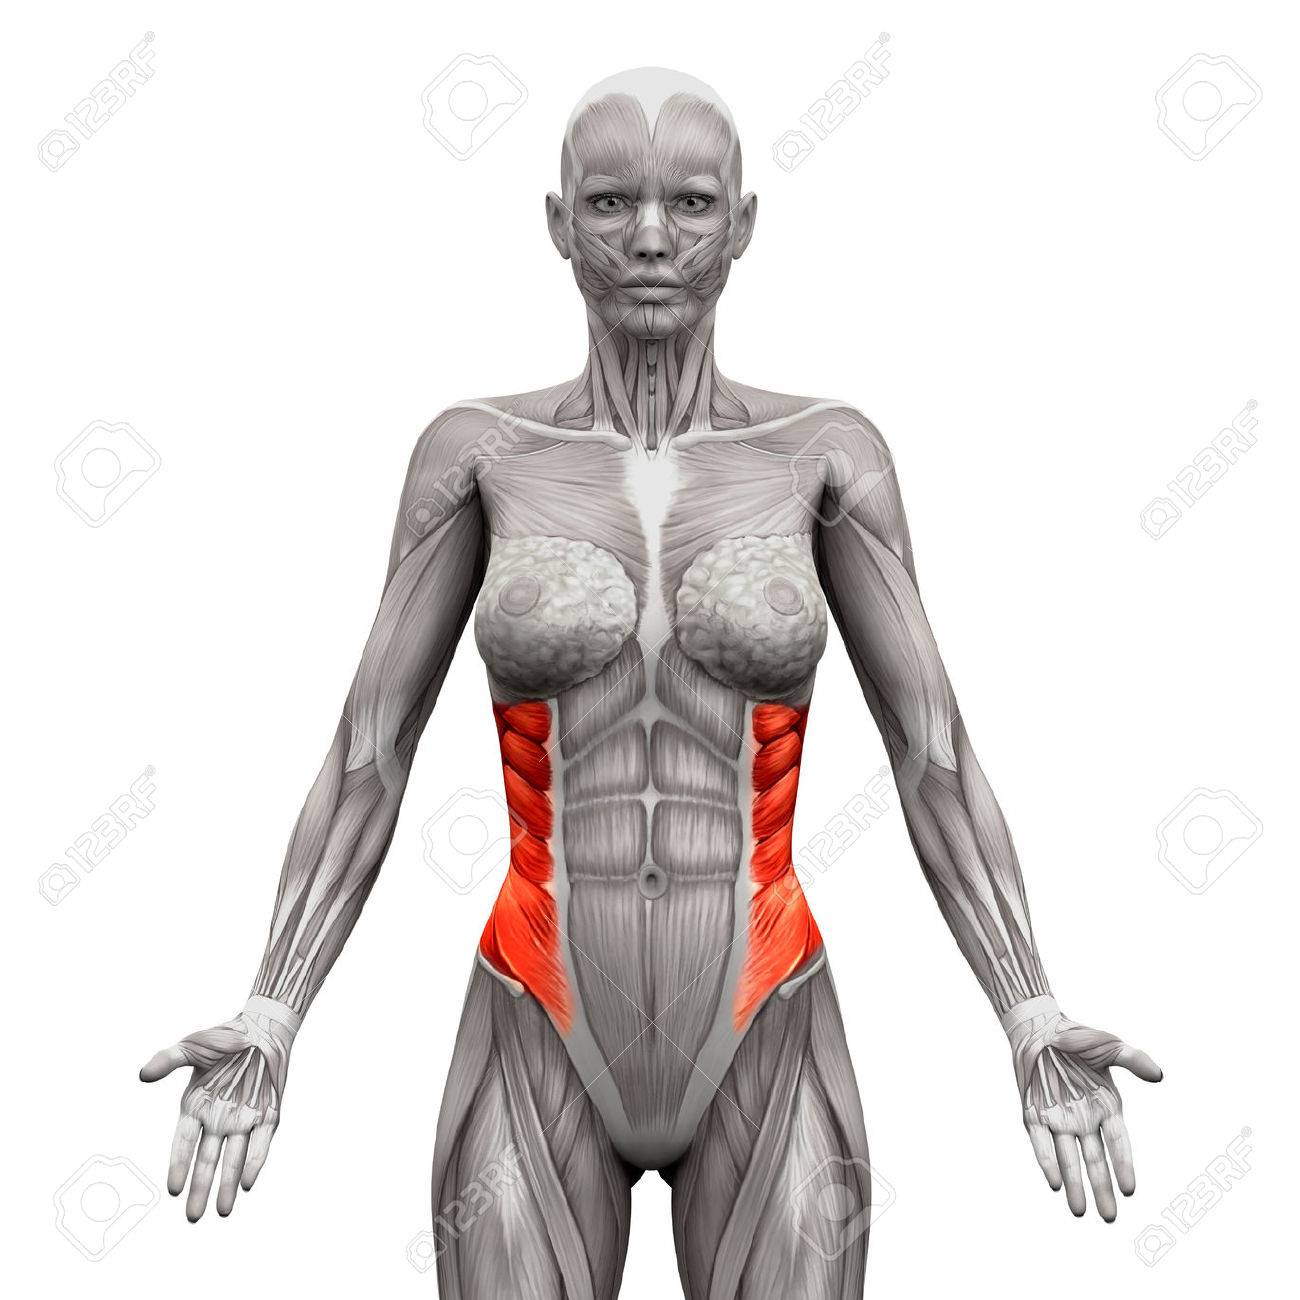 external oblique muscles - anatomy muscles isolated on white, Human Body